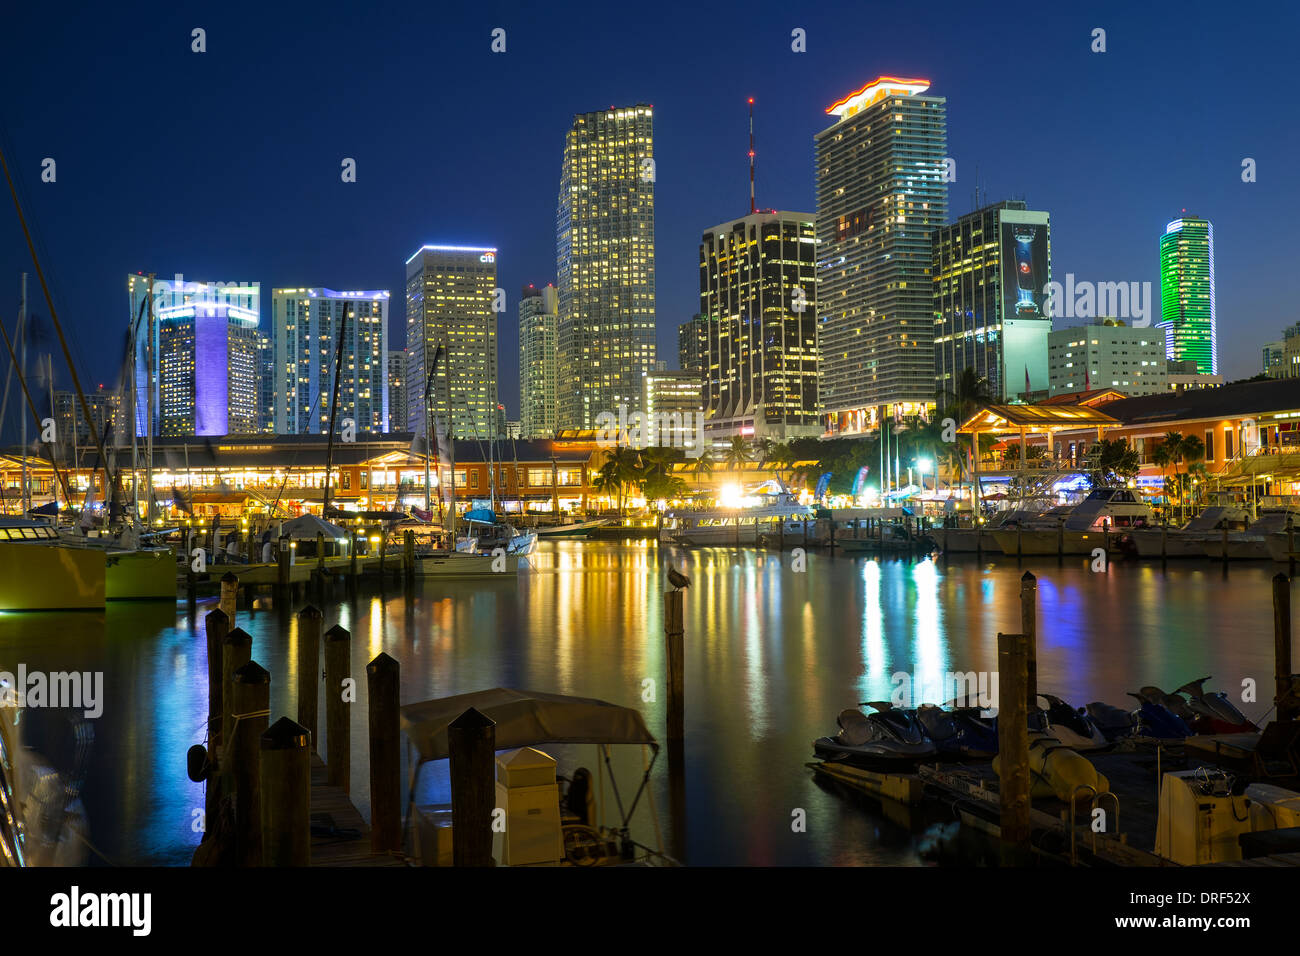 L'horizon financier de Miami, Floride, USA Photo Stock